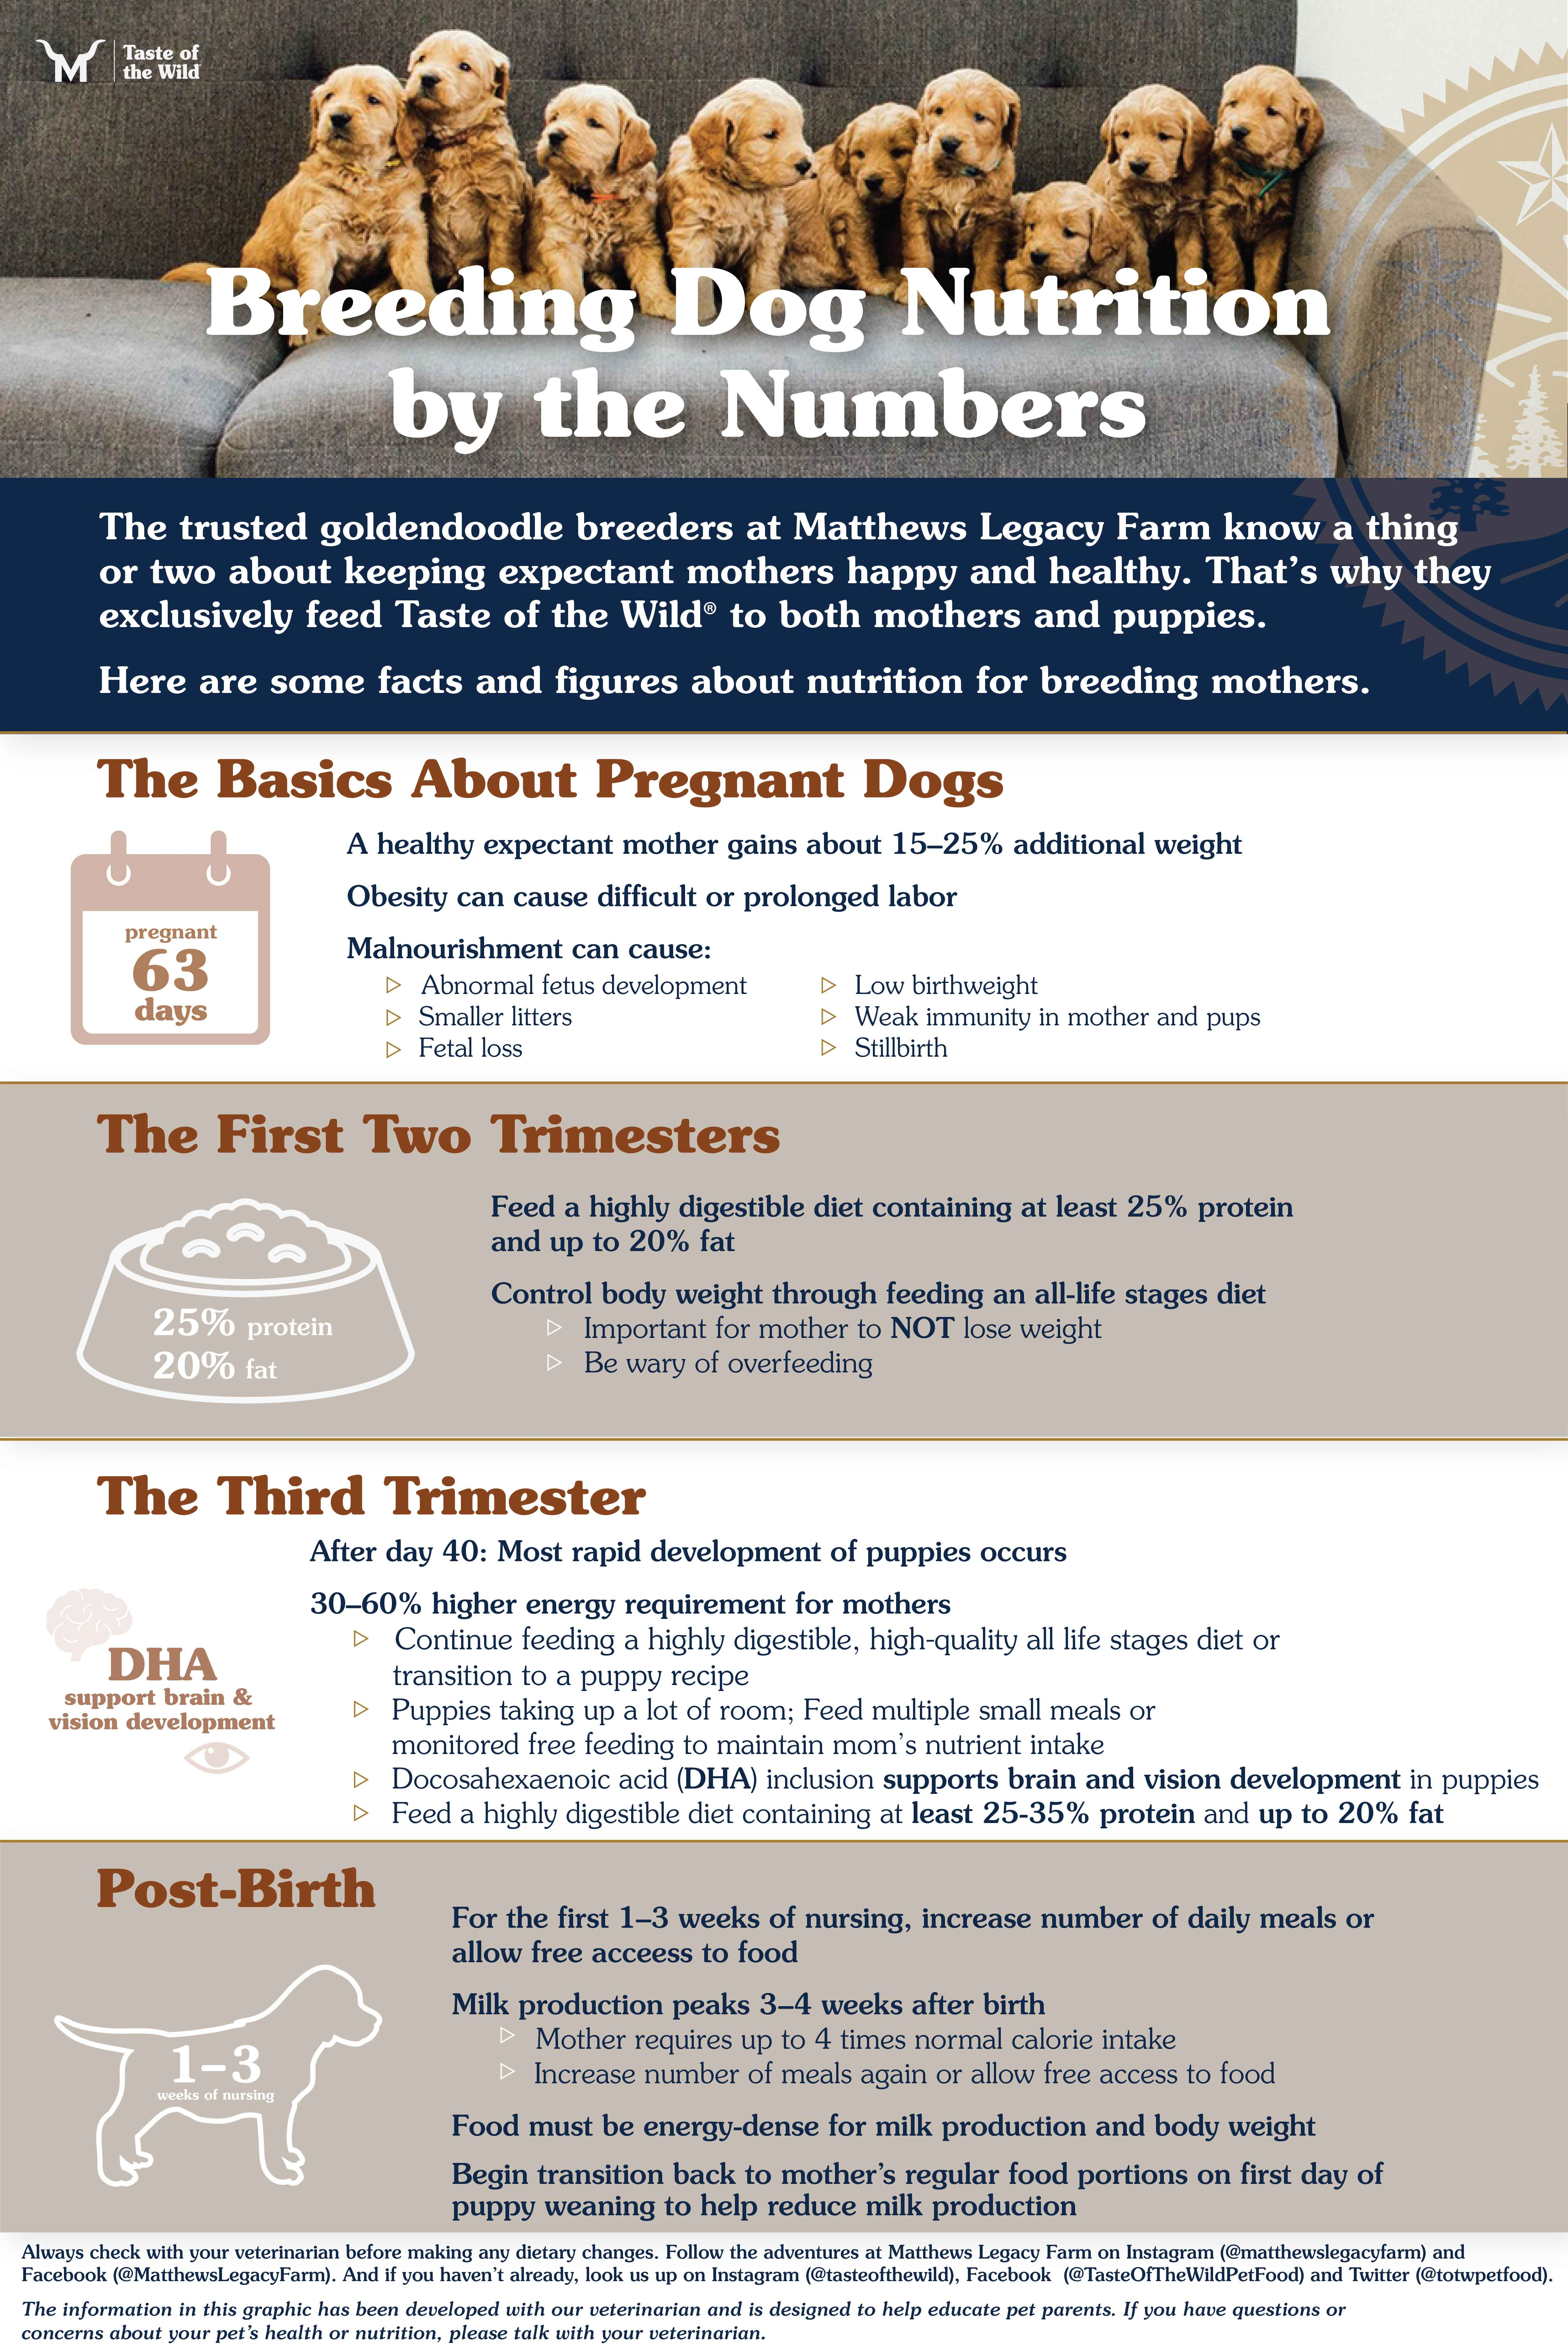 Breeding Dog Nutrition by the Numbers